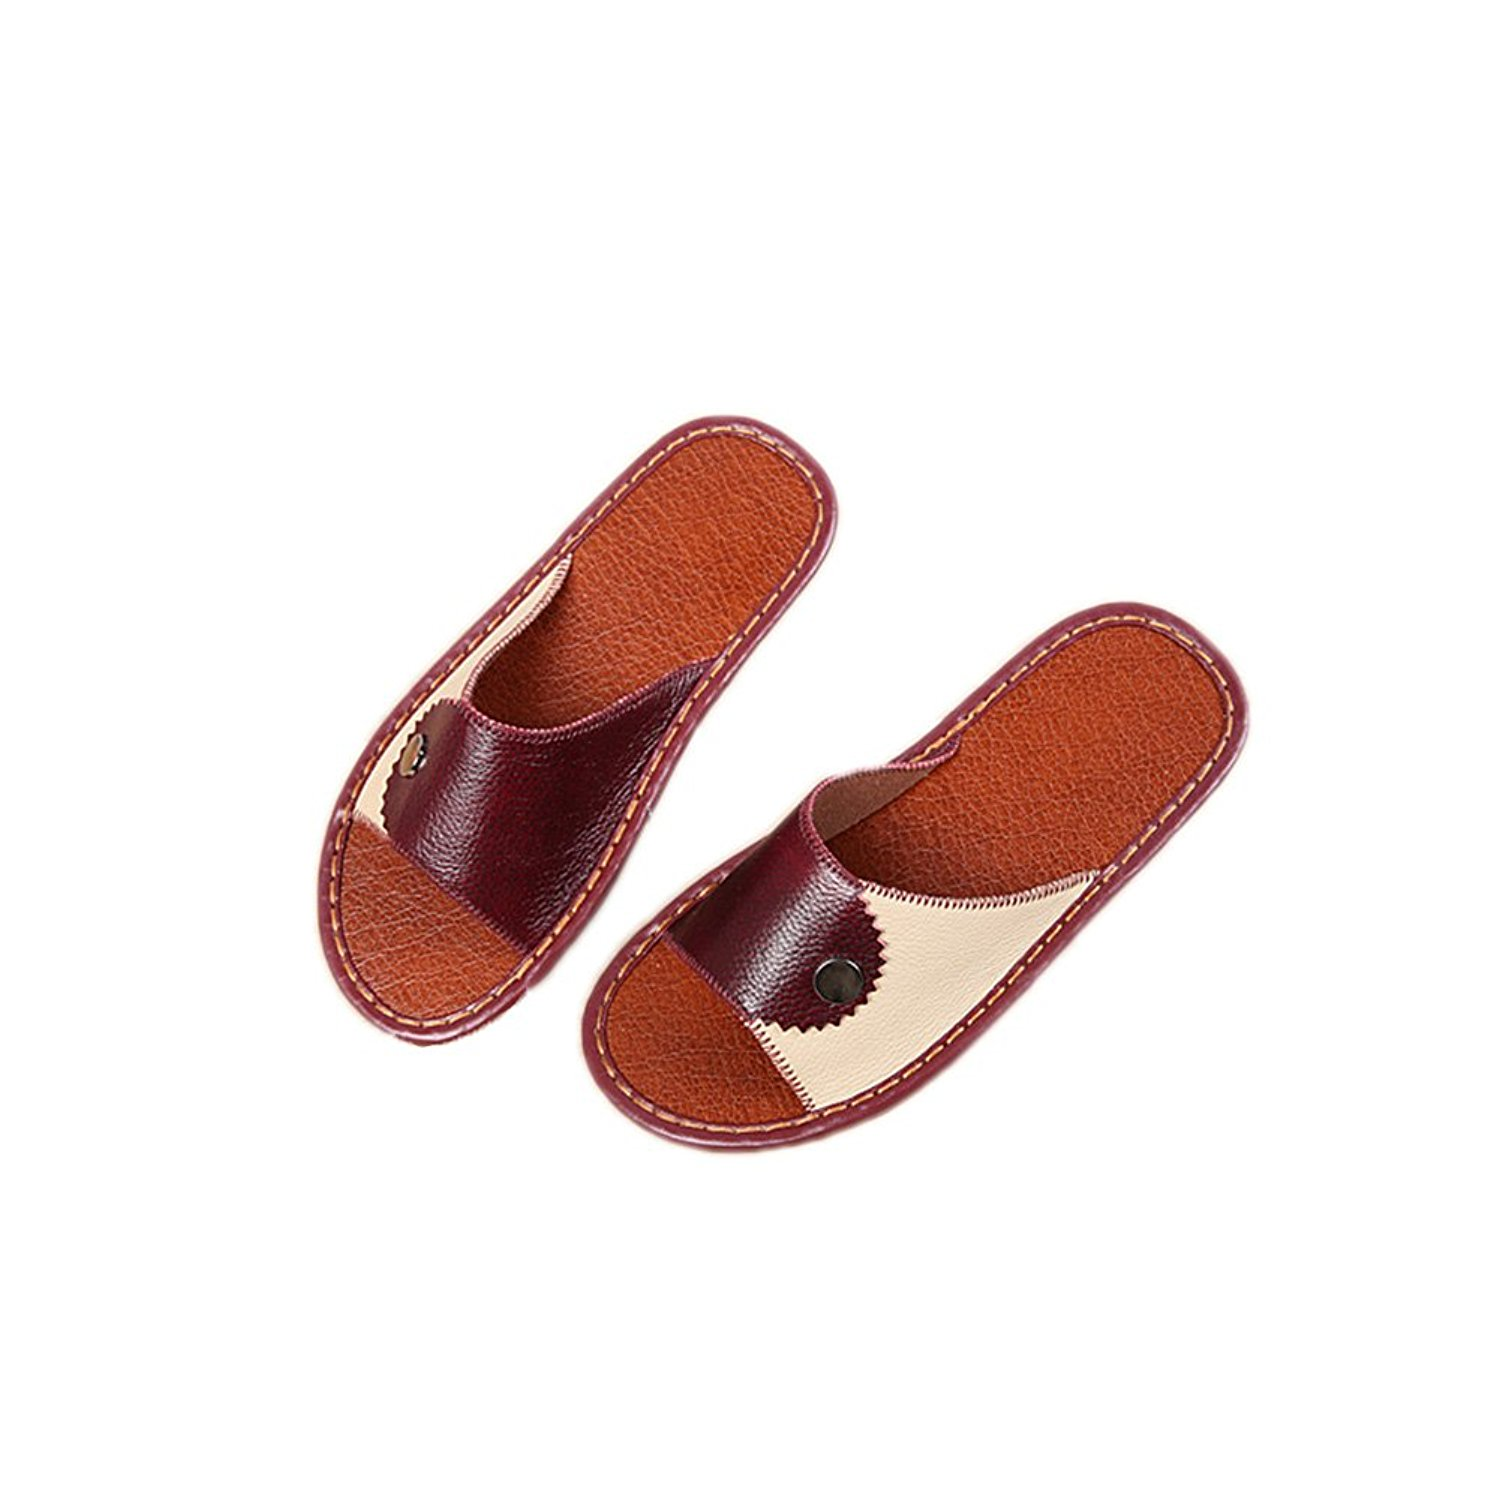 Cheap Slipper Soles For Crochet Slippers Find Slipper Soles For